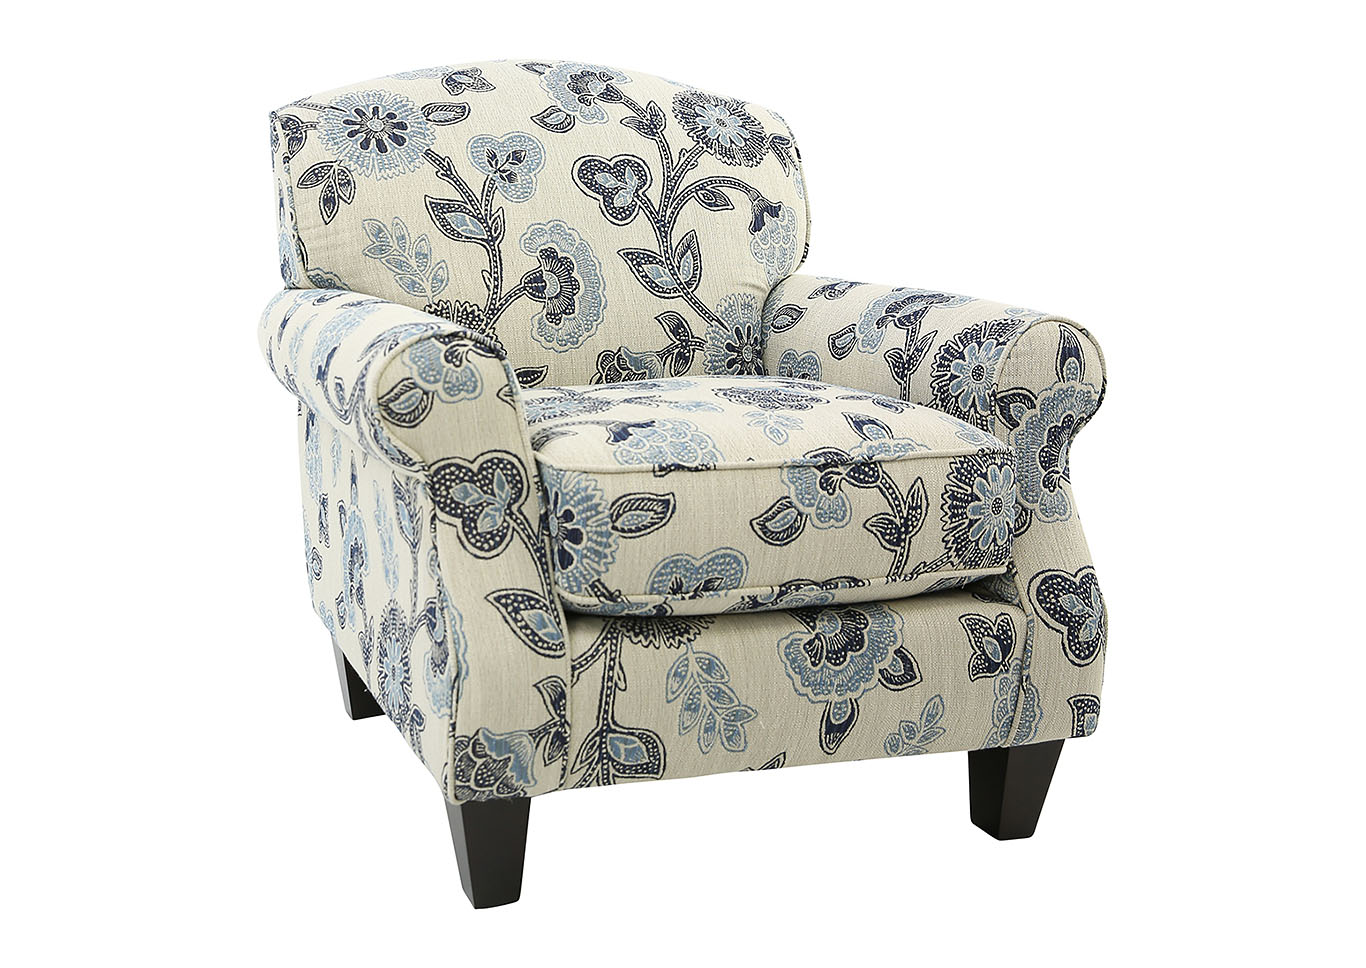 Enjoyable Ivan Smith Catalina Maya Indigo Floral Accent Chair Gmtry Best Dining Table And Chair Ideas Images Gmtryco